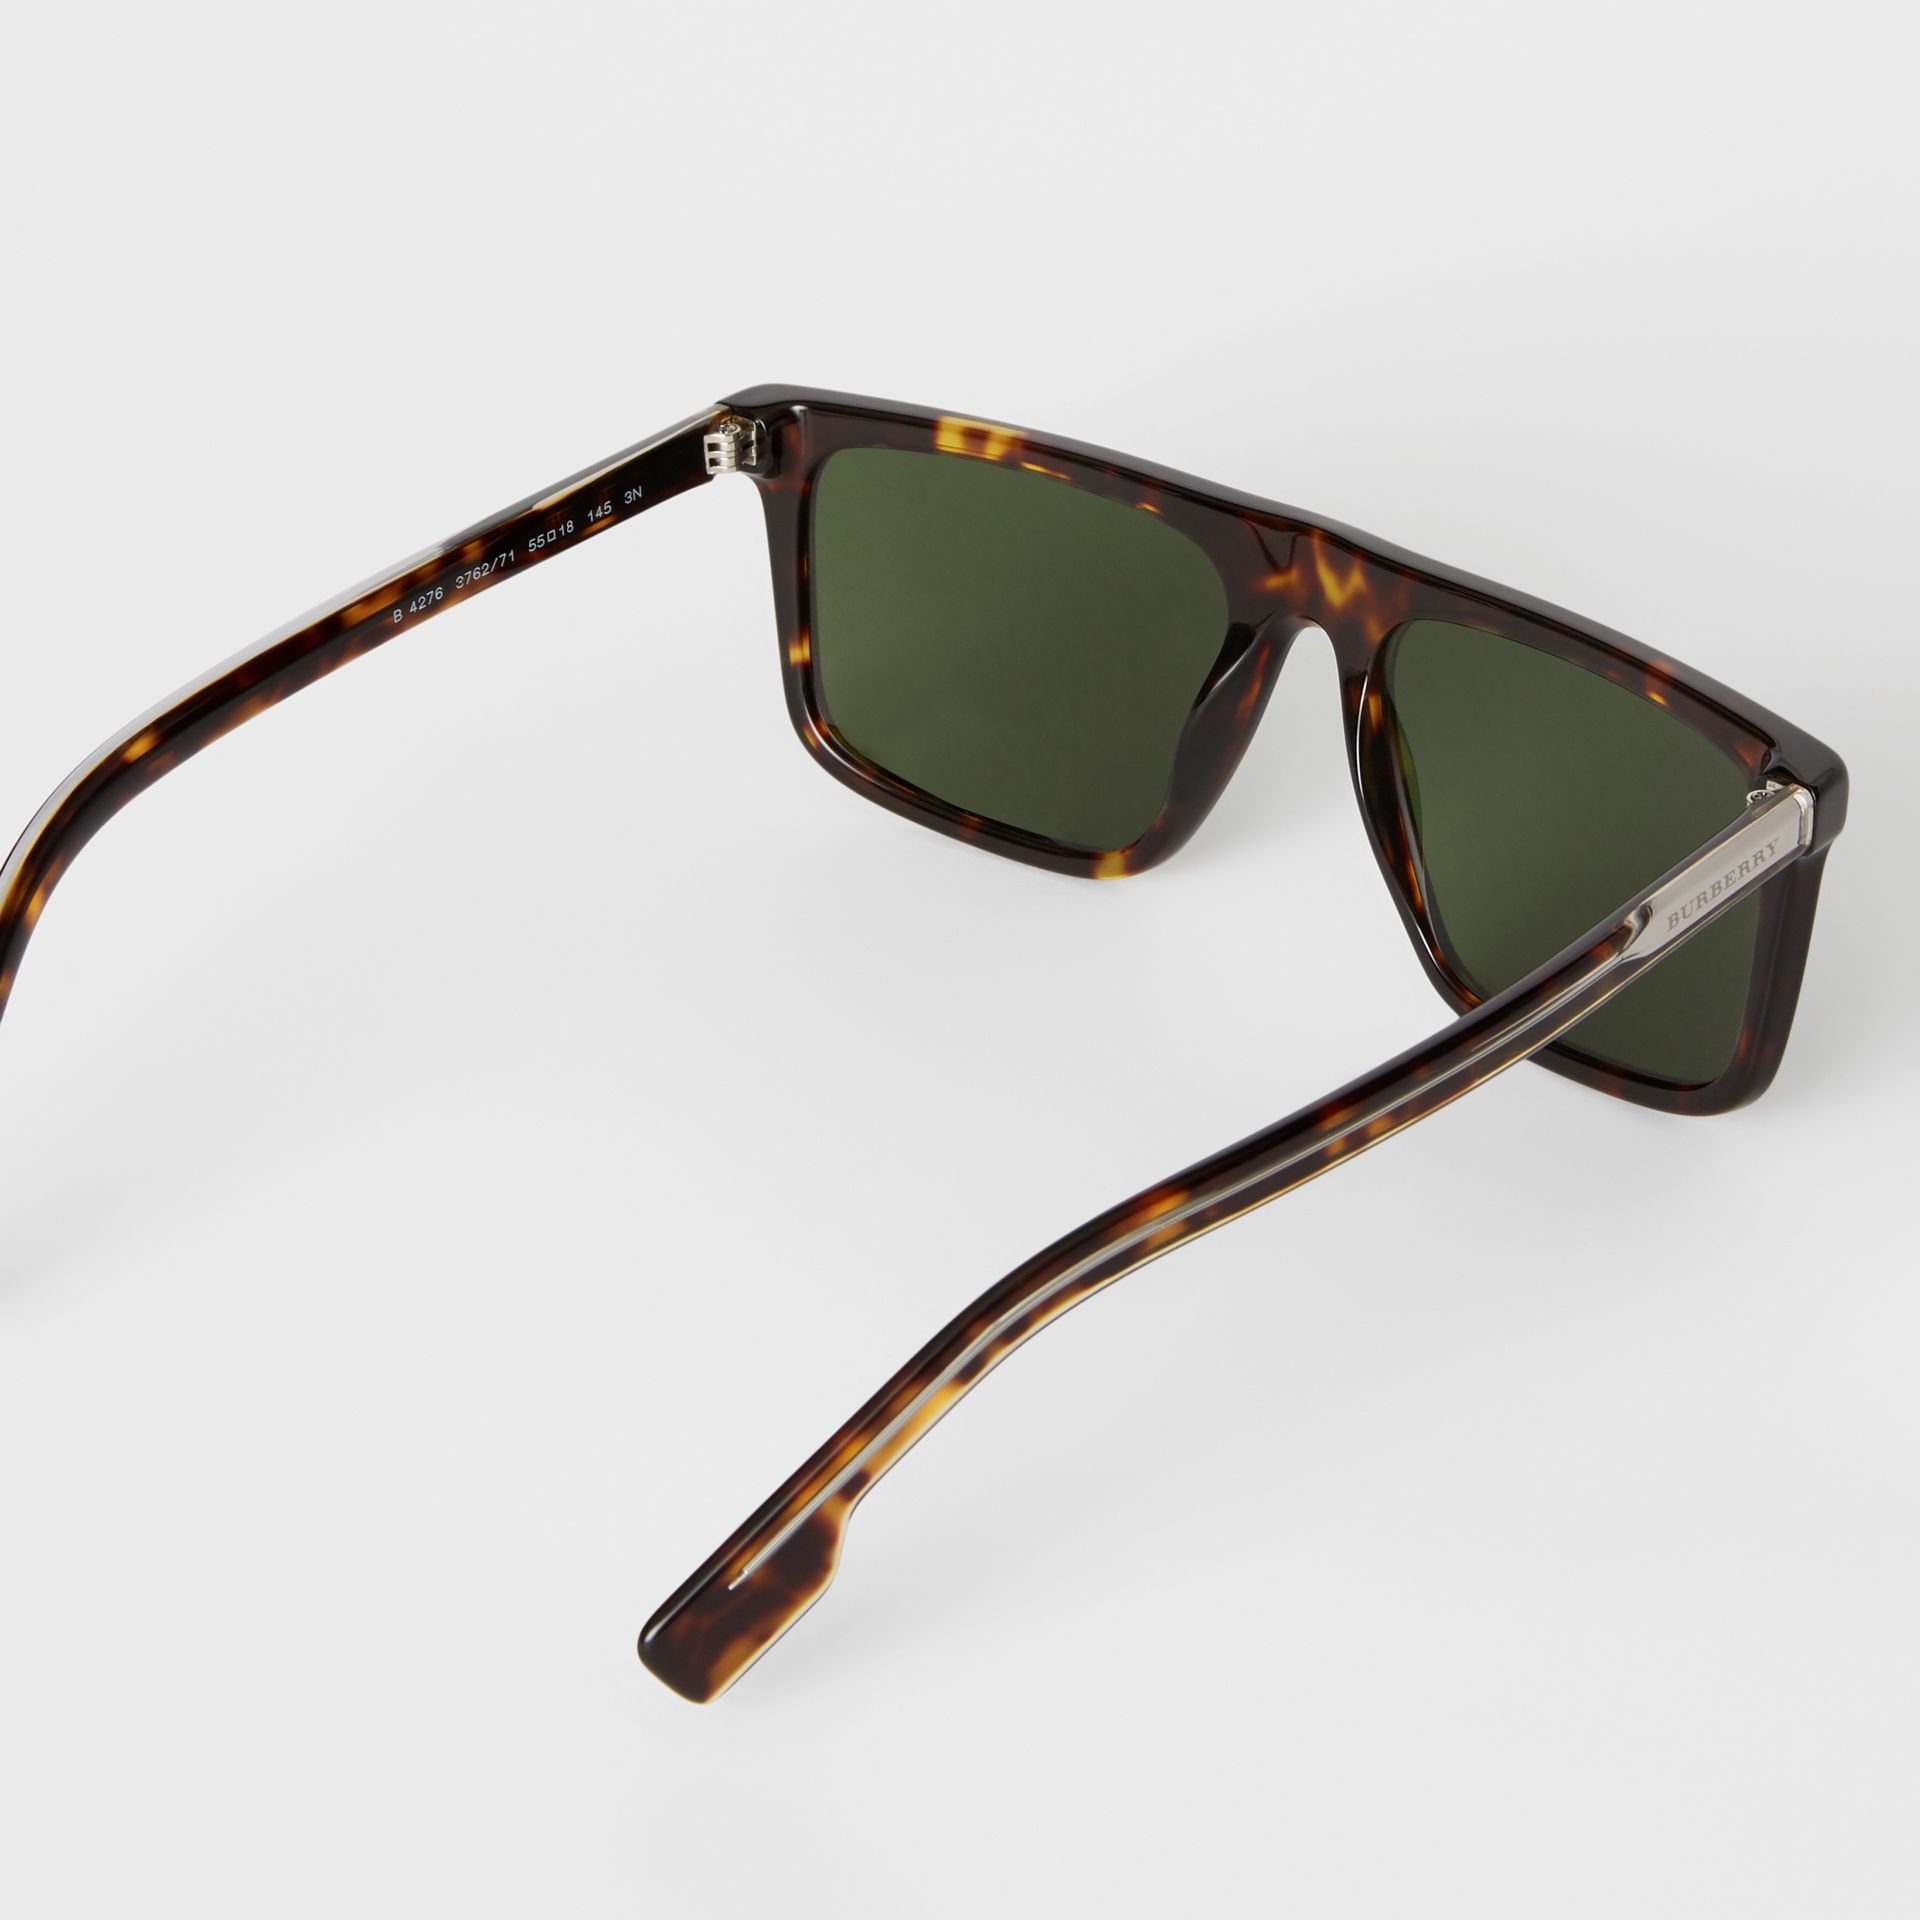 Straight-brow Sunglasses in Tortoise Shell - Men | Burberry United States - gallery image 3